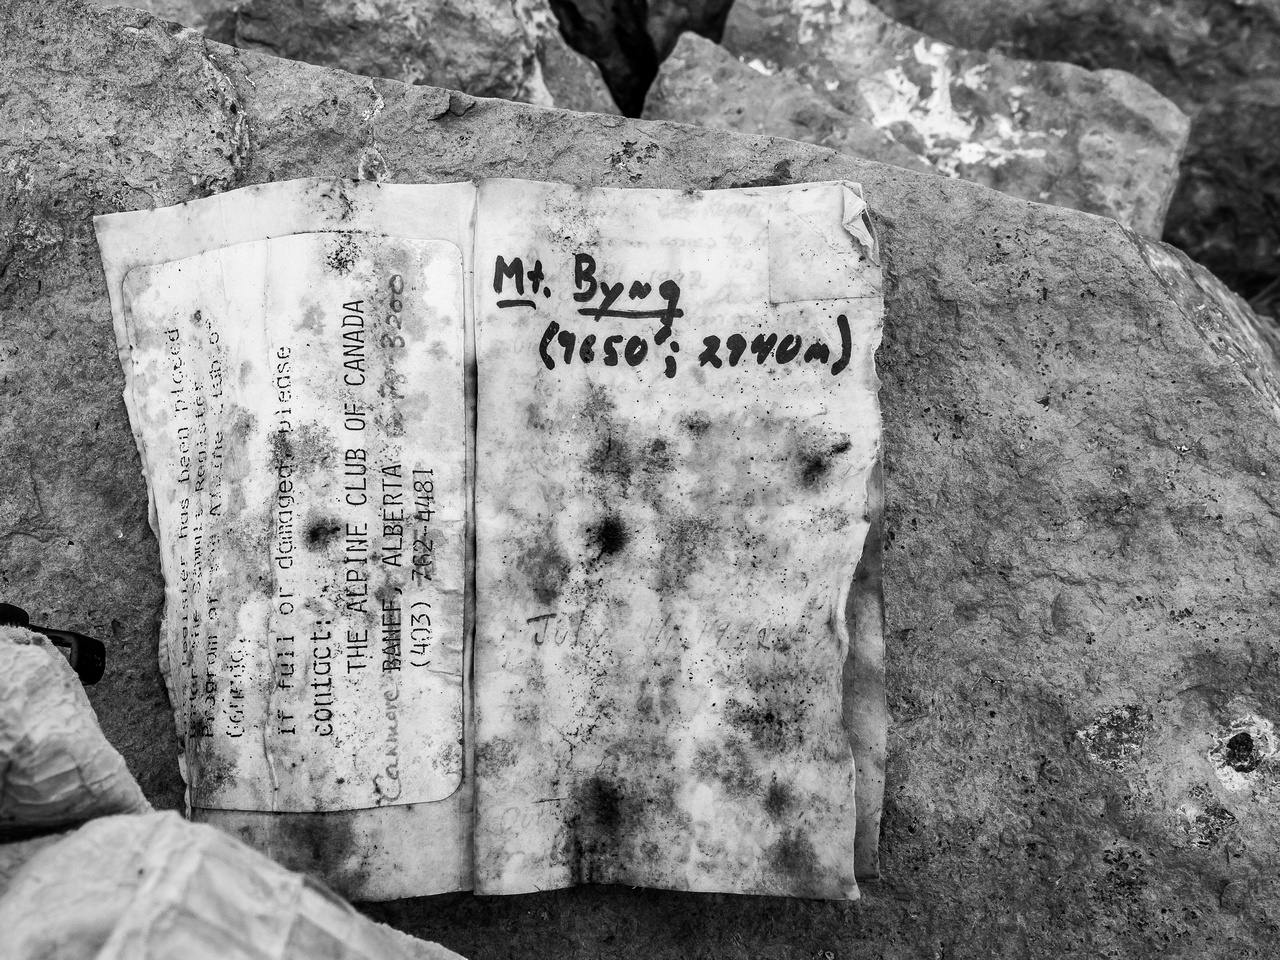 Unfortunately the summit register is yet another soaked Collier one. I'm not sure why, but I've encountered a TON of these this year. Which is a shame because they're illegible and pretty much ruined.